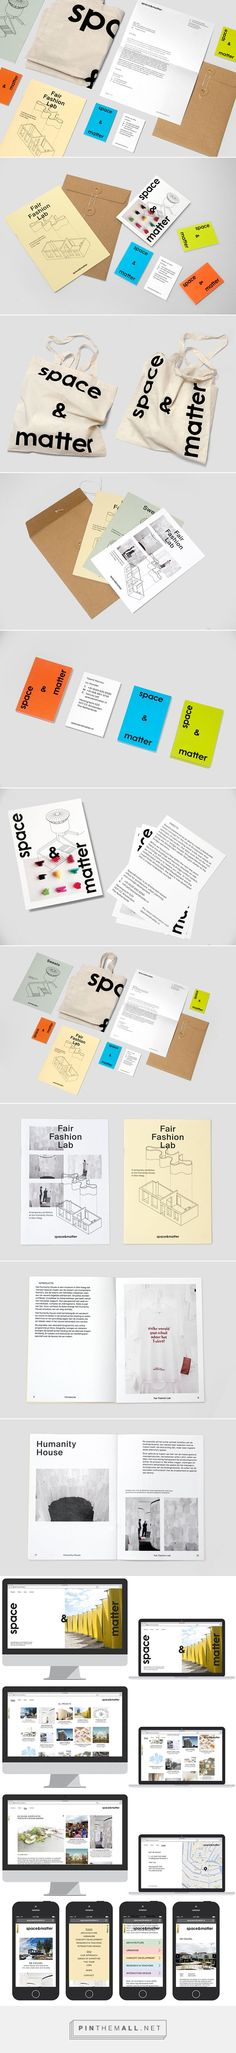 space&matter Visual Identity by Mark Bain